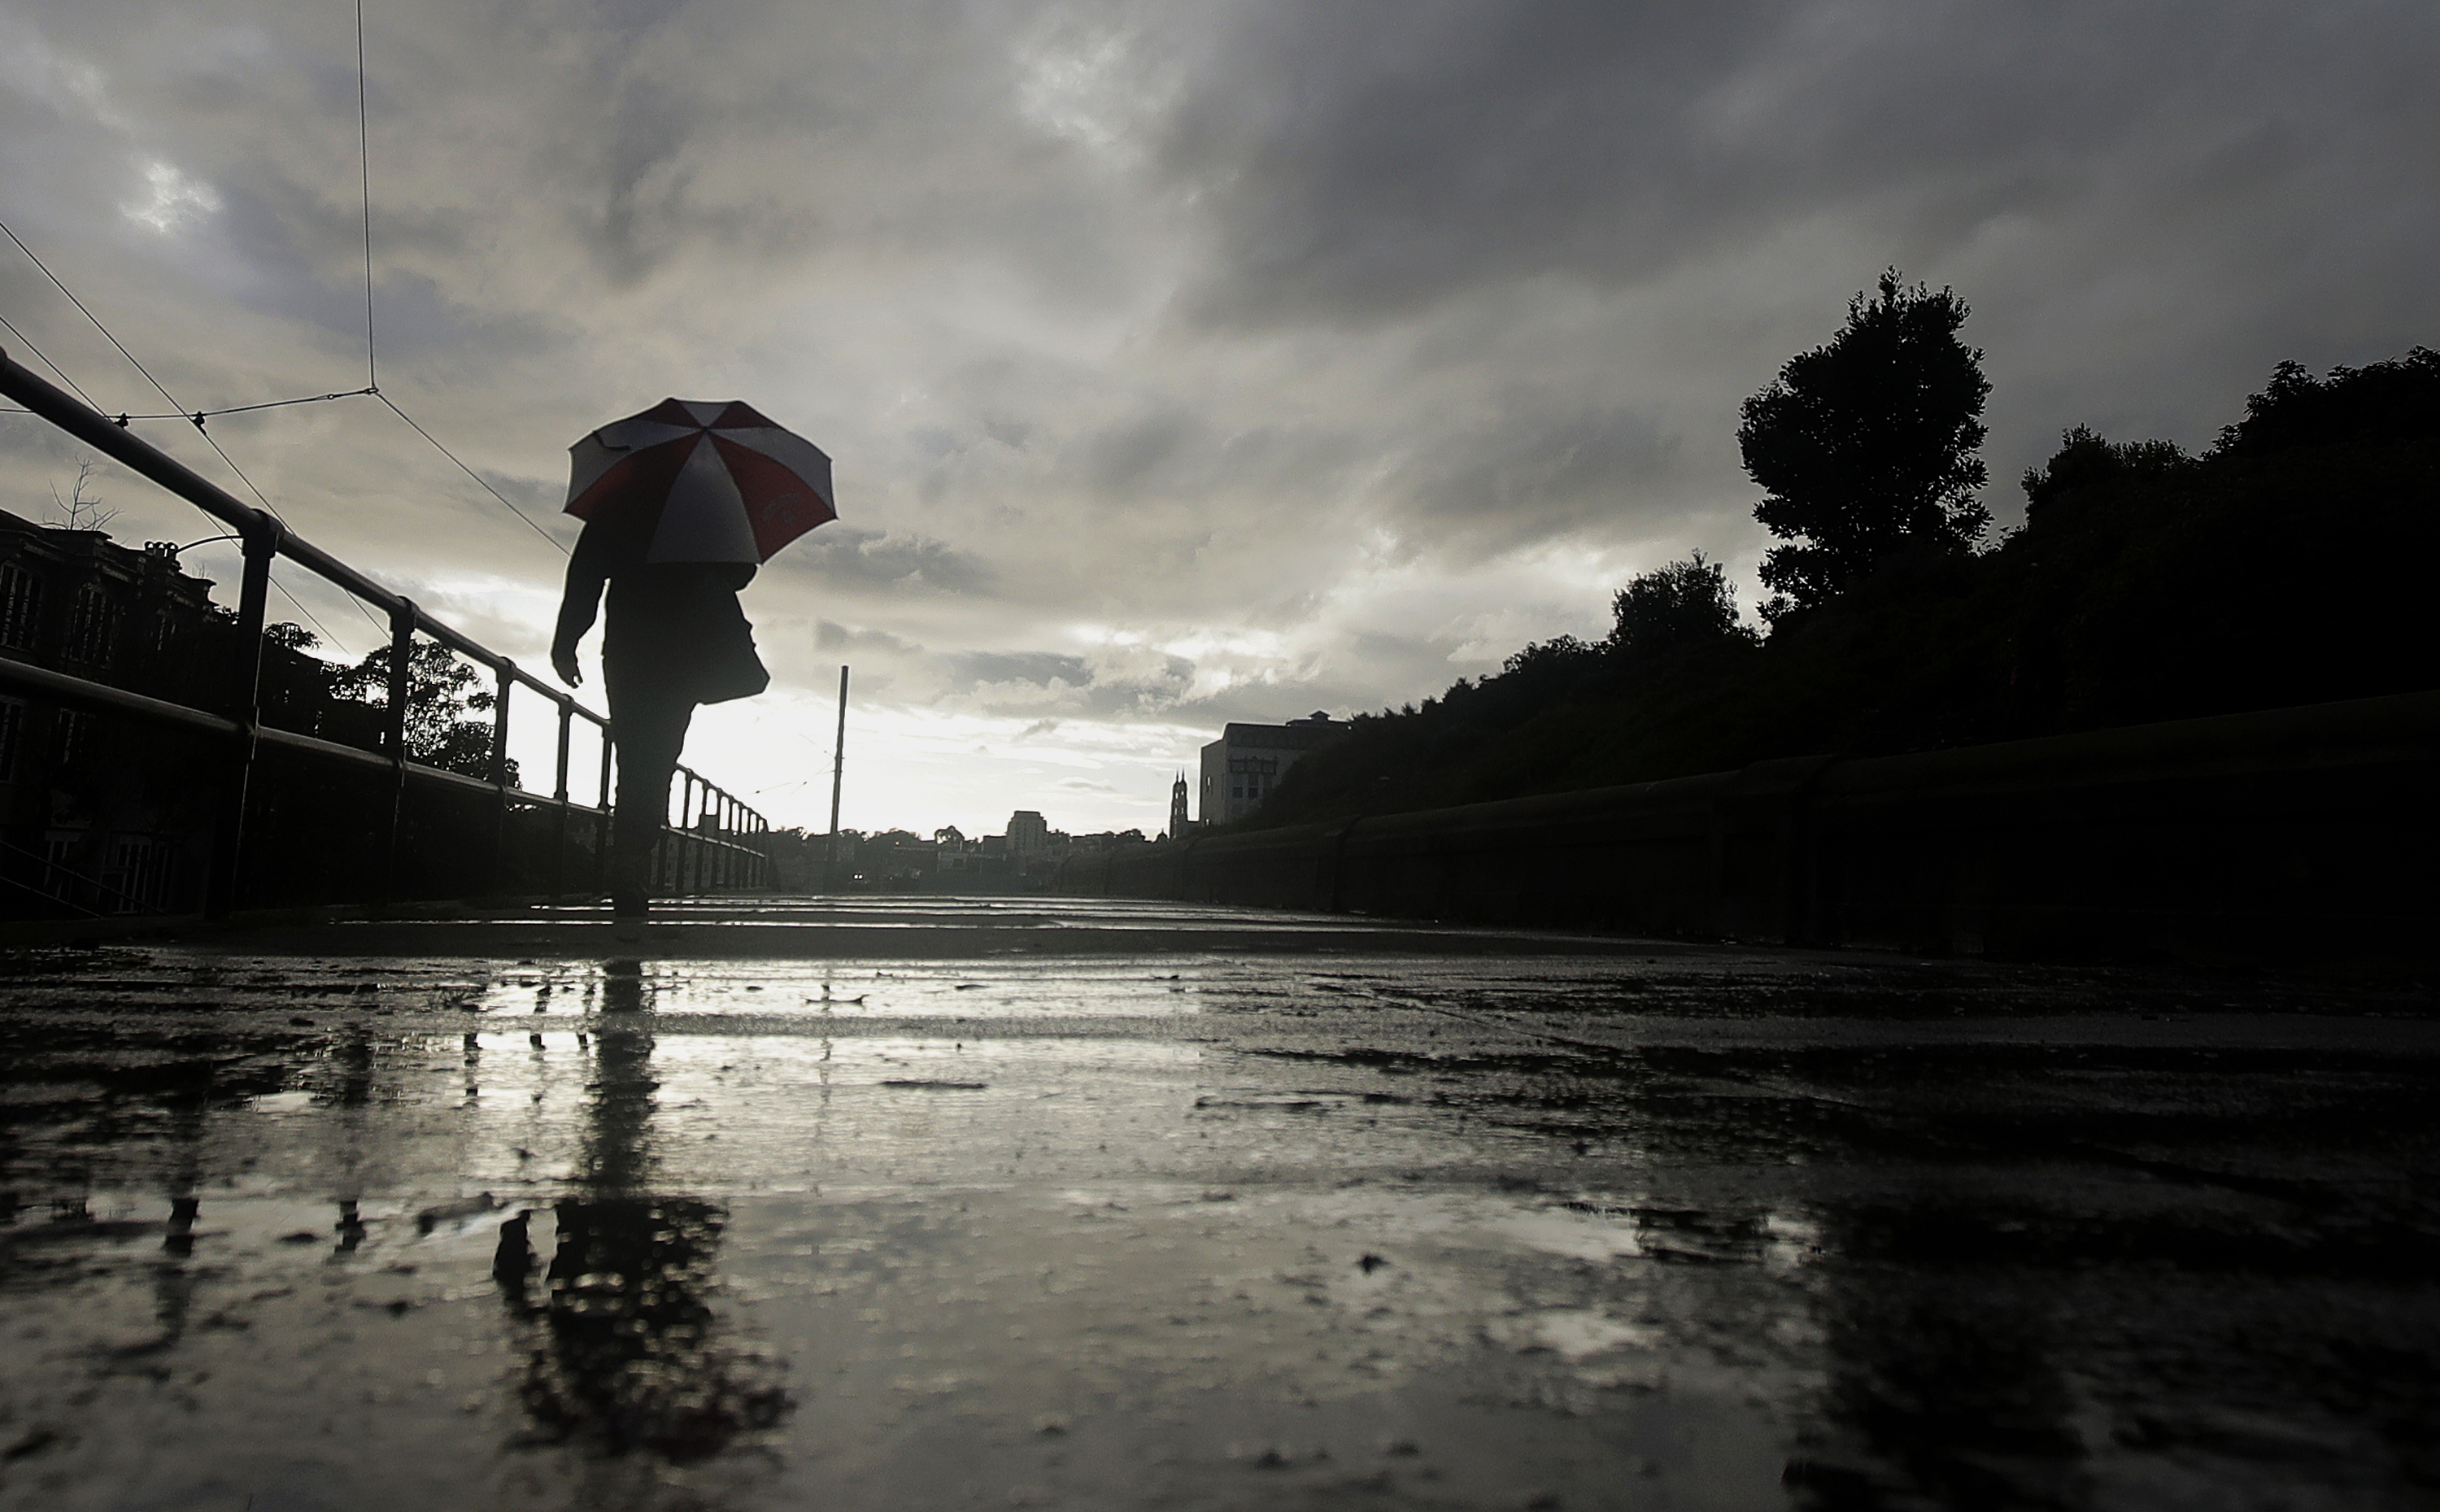 California cold: Record-breaking chilly and wet weather